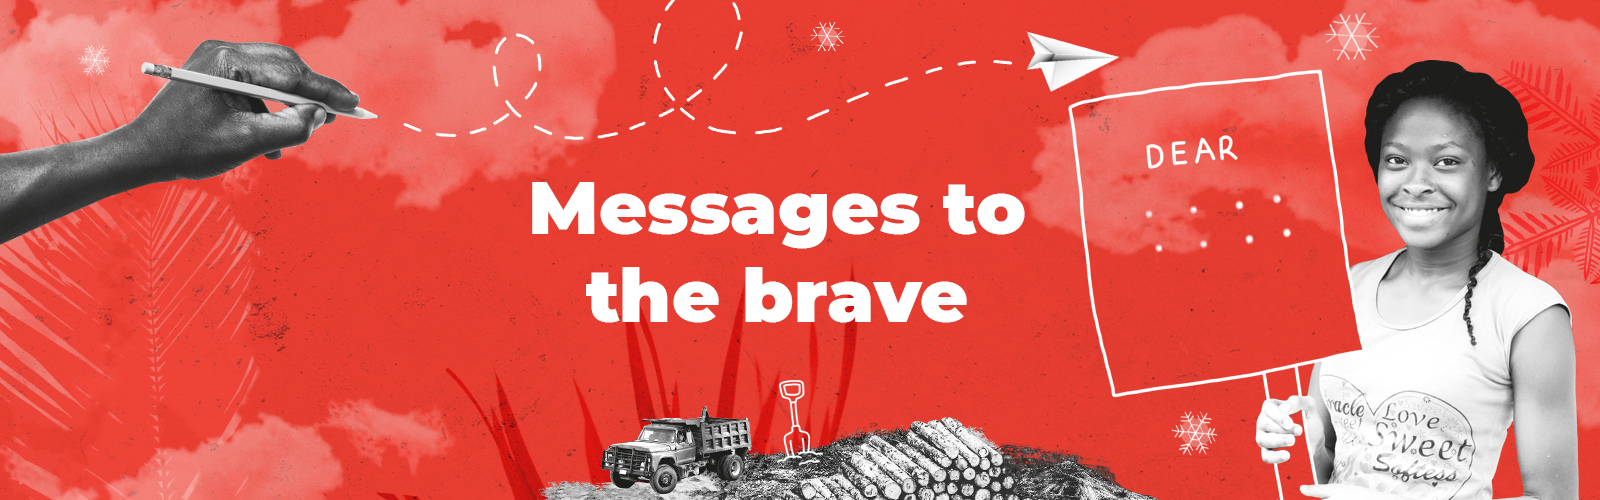 messages to the brave online banner